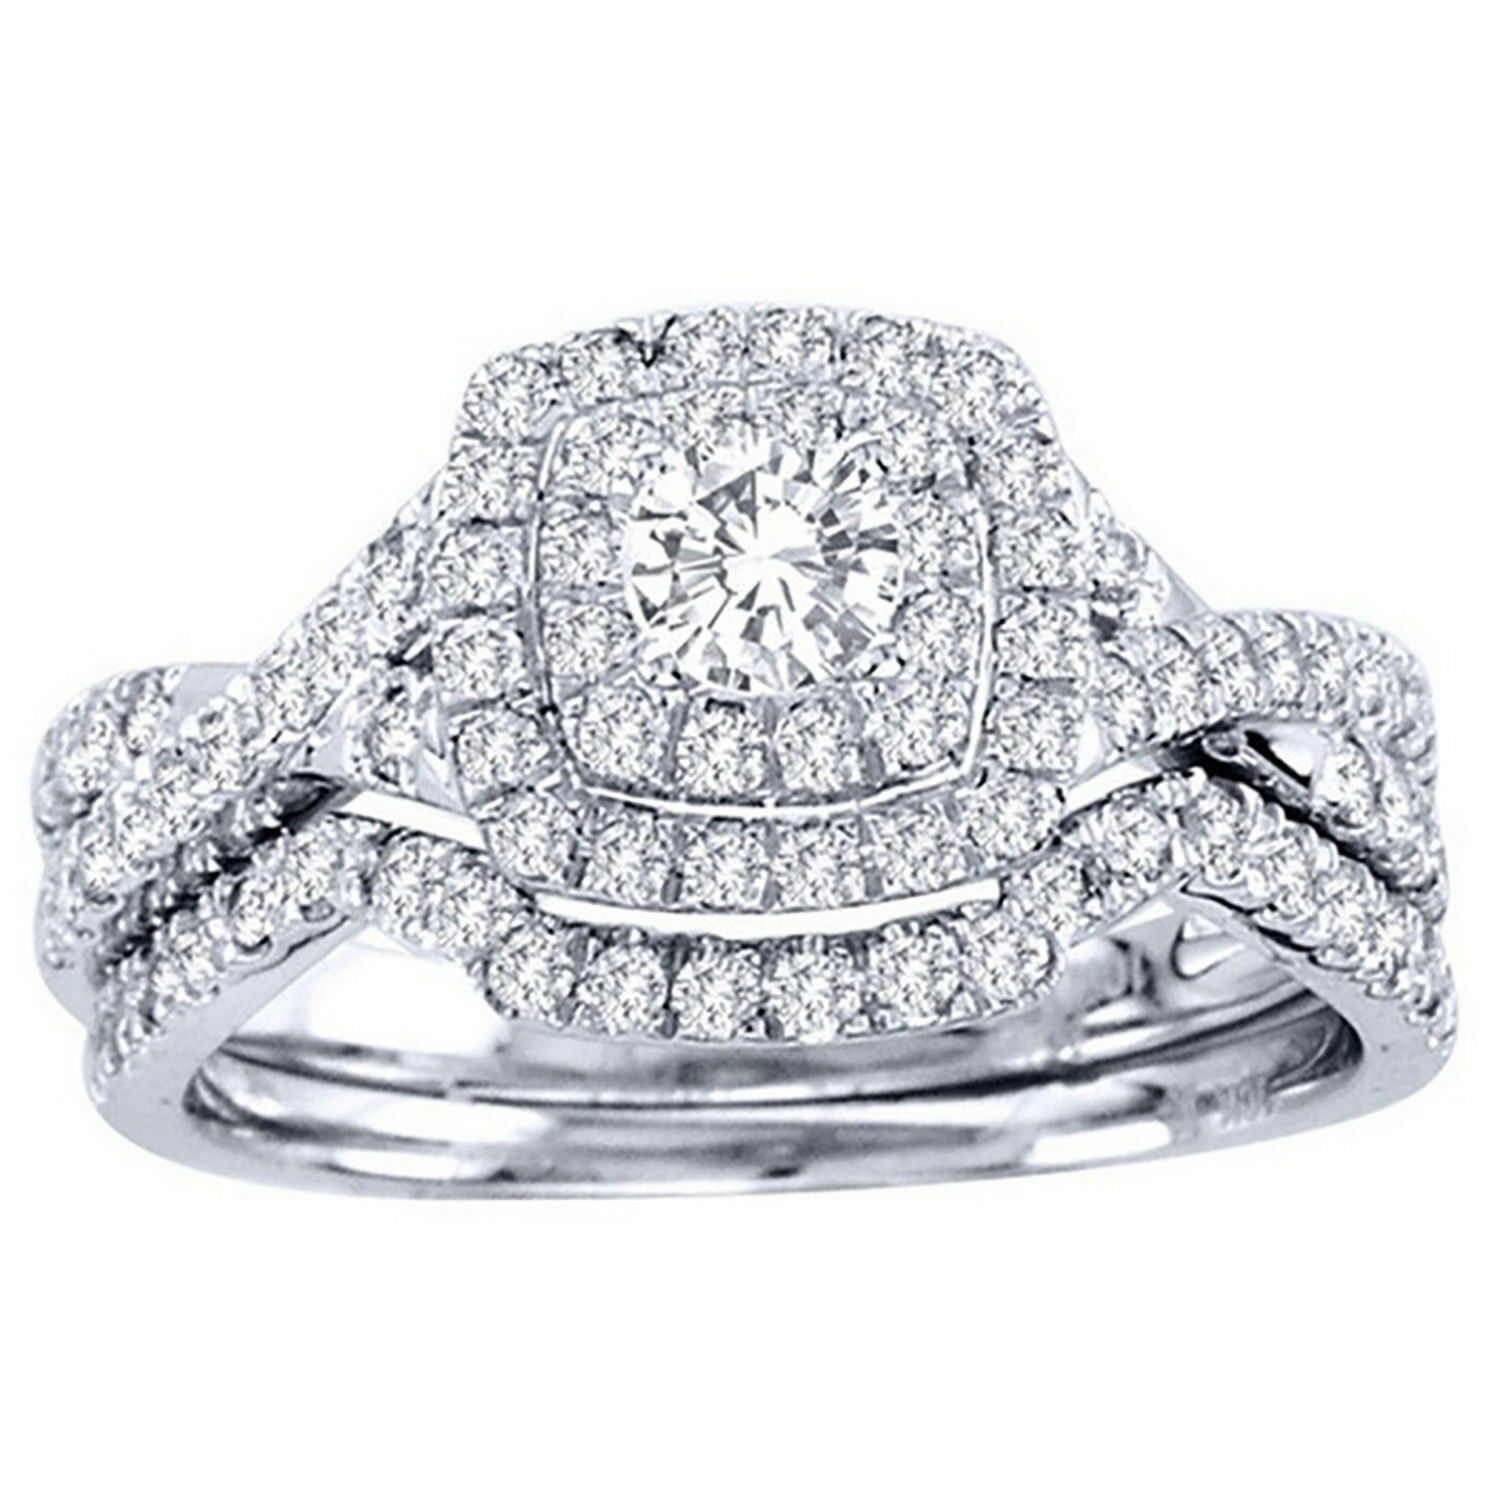 Ginger Lyne Collection Amara Exquisite Oval CZ Rose Gold Plated Wedding Ring Set